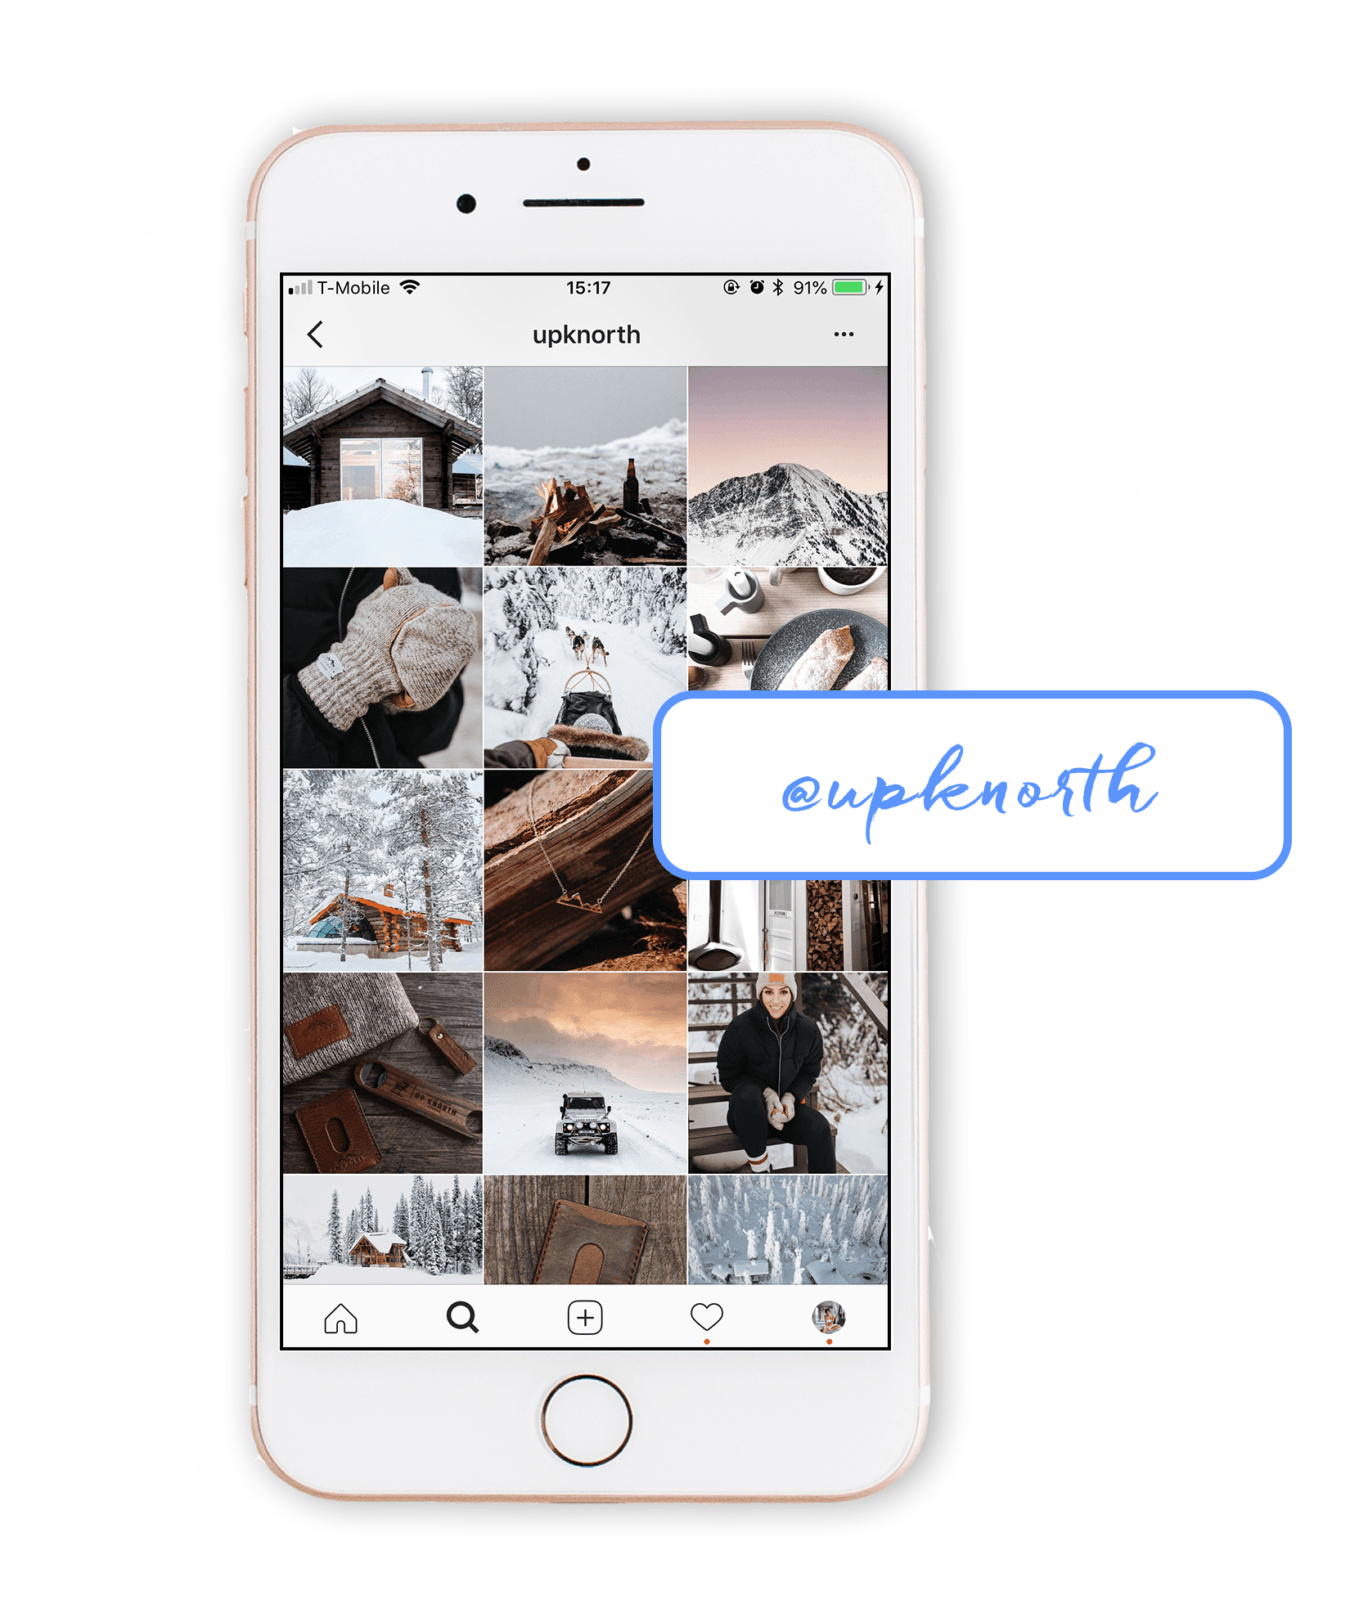 rustic and rural instagram theme